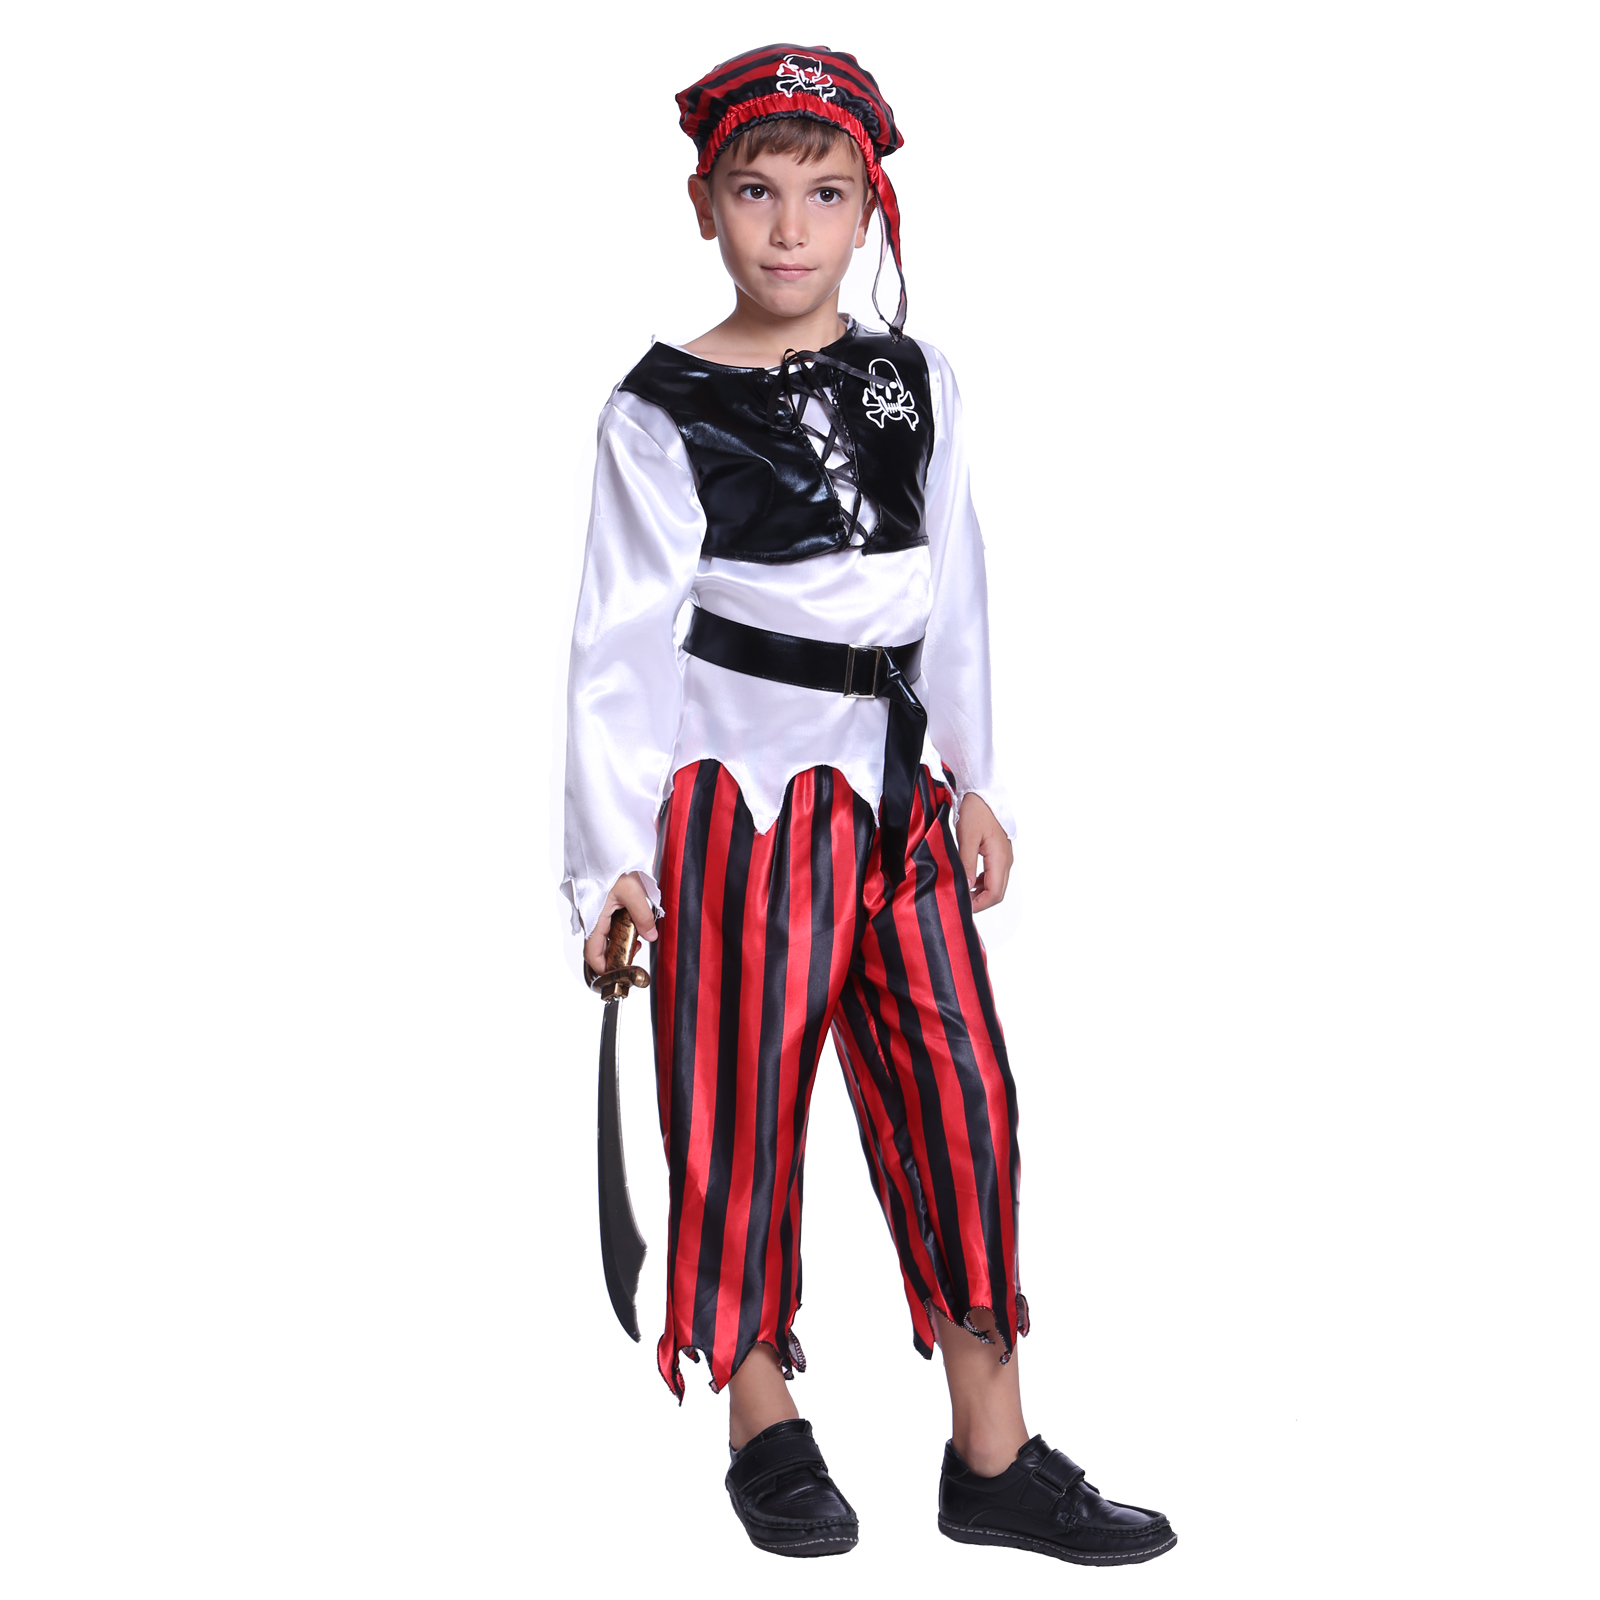 14+ Pirate Halloween Costumes For Kids Gif